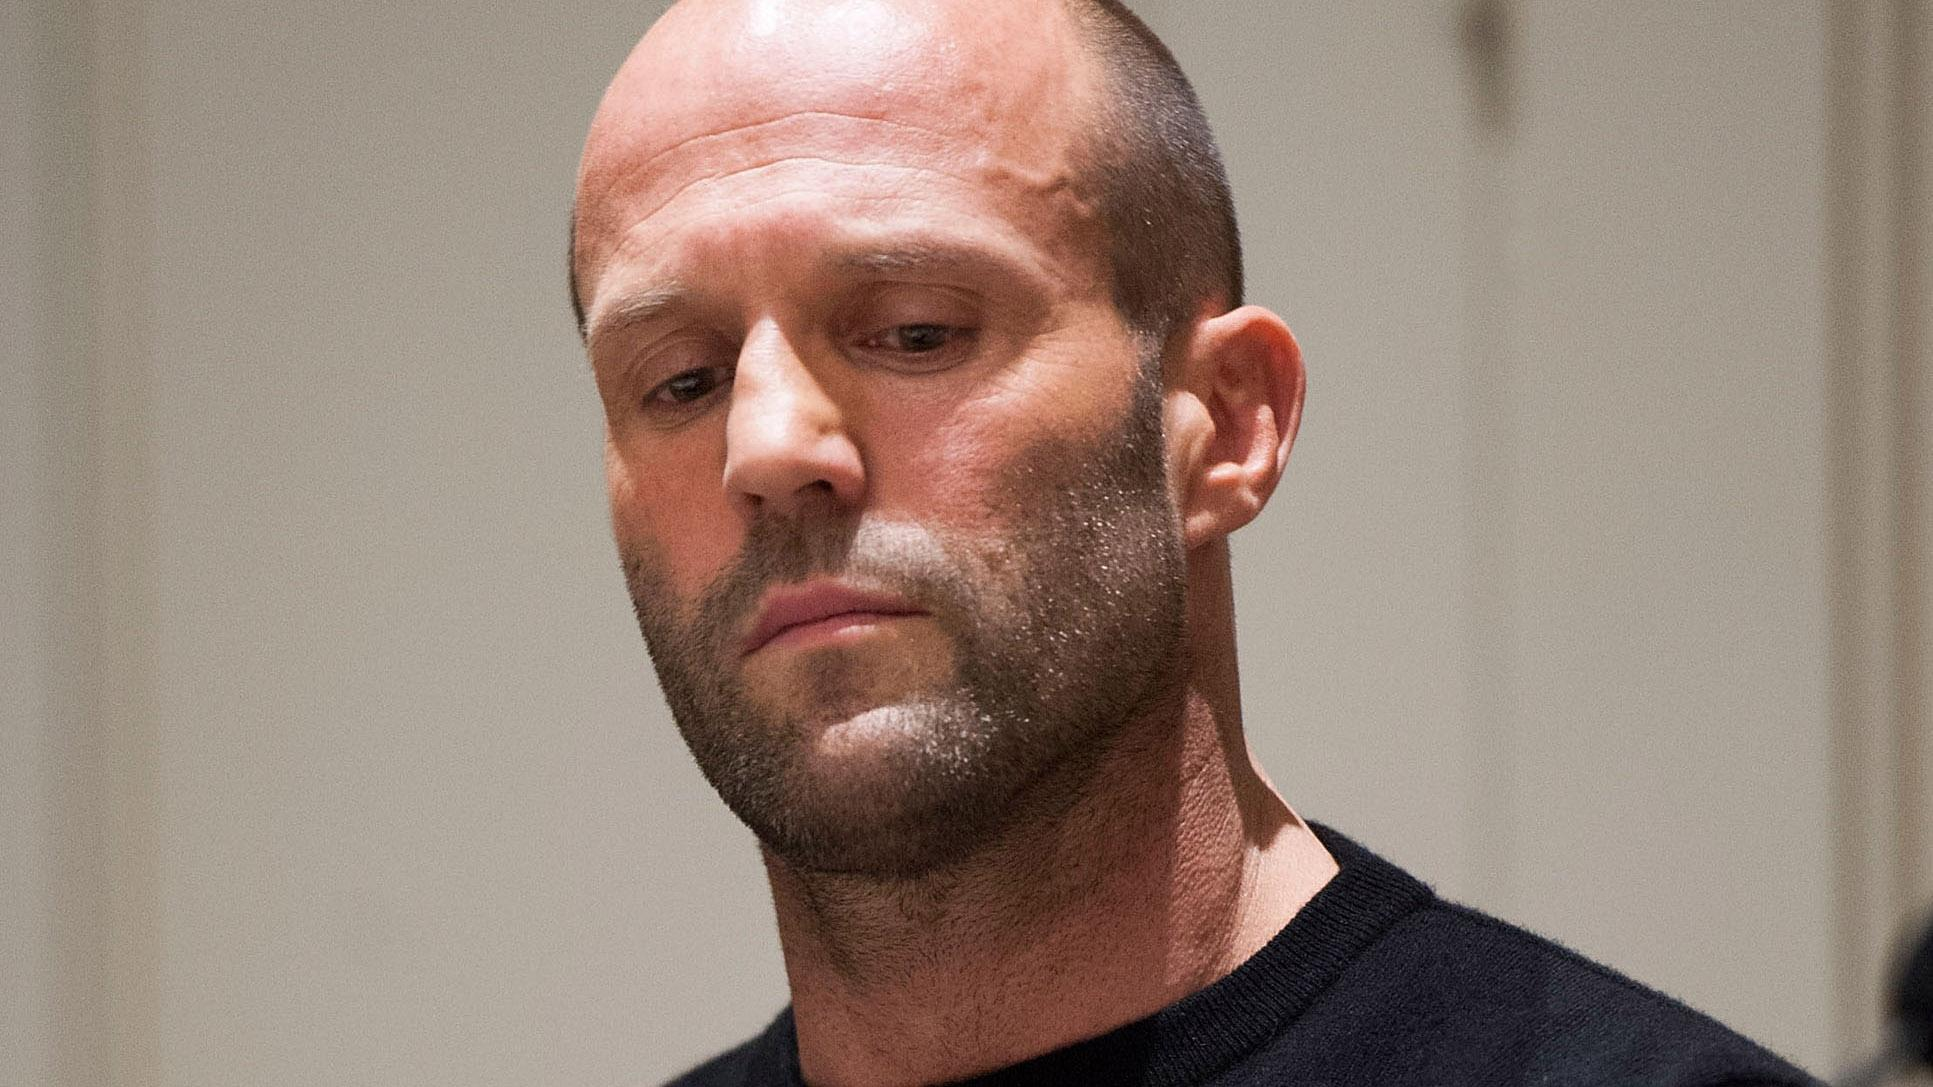 ClickHole On Twitter Coming Clean Jason Statham